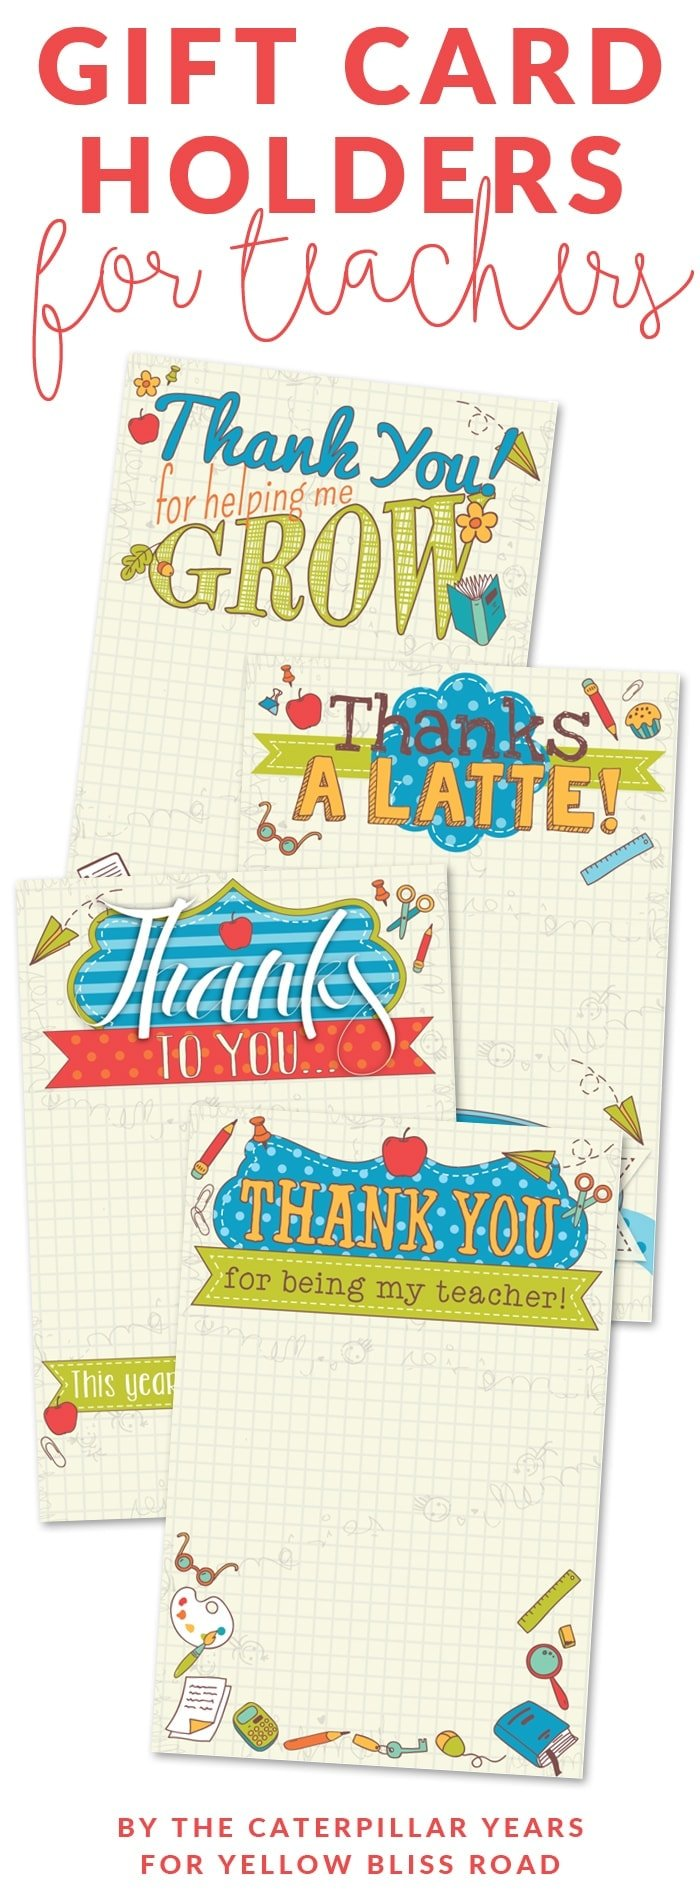 Free Printable Gift Card holders for Teachers, perfect for Last Day of School!